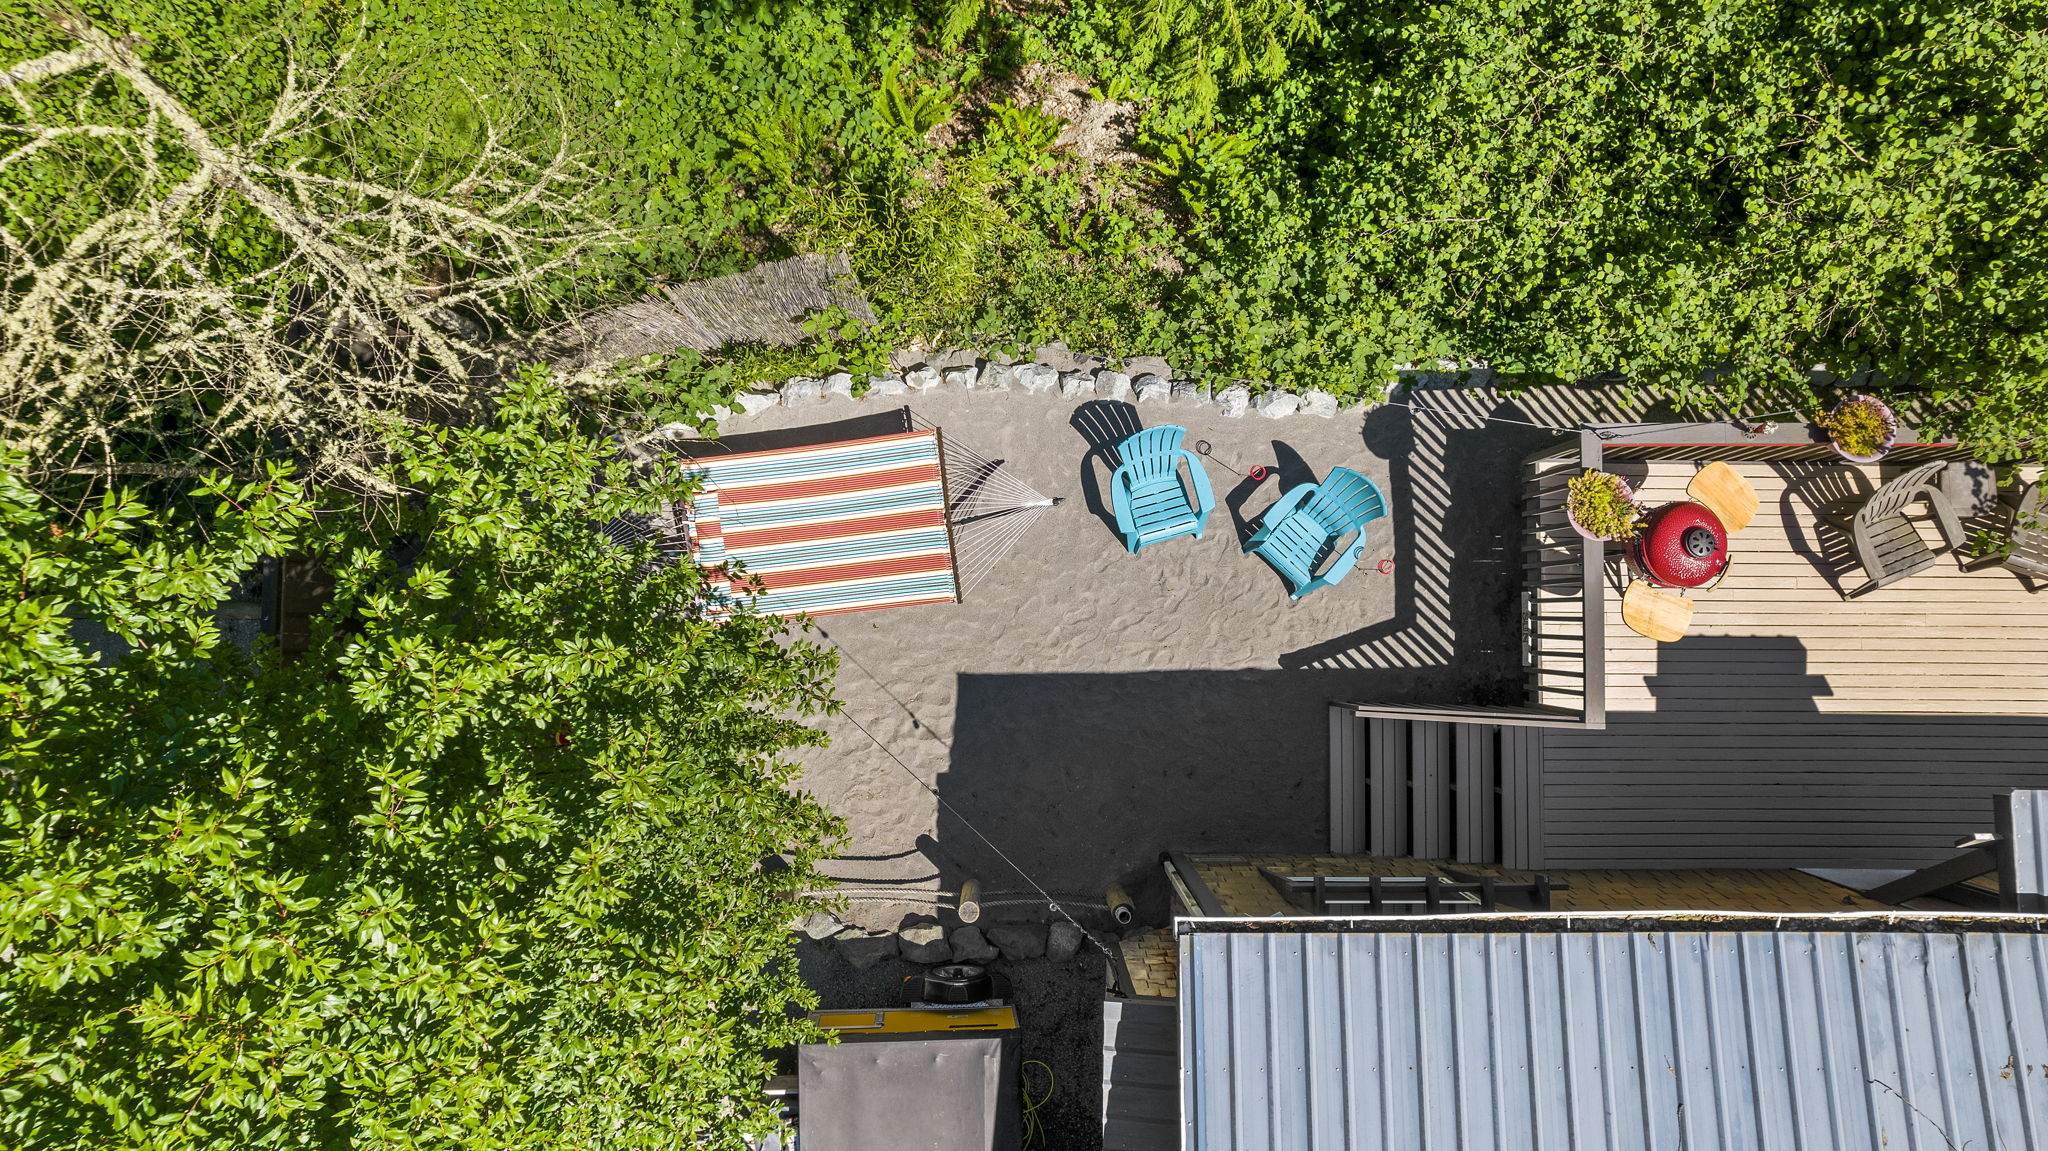 Ariel view of the hammock and beach setting! Great place to relax and unwind!